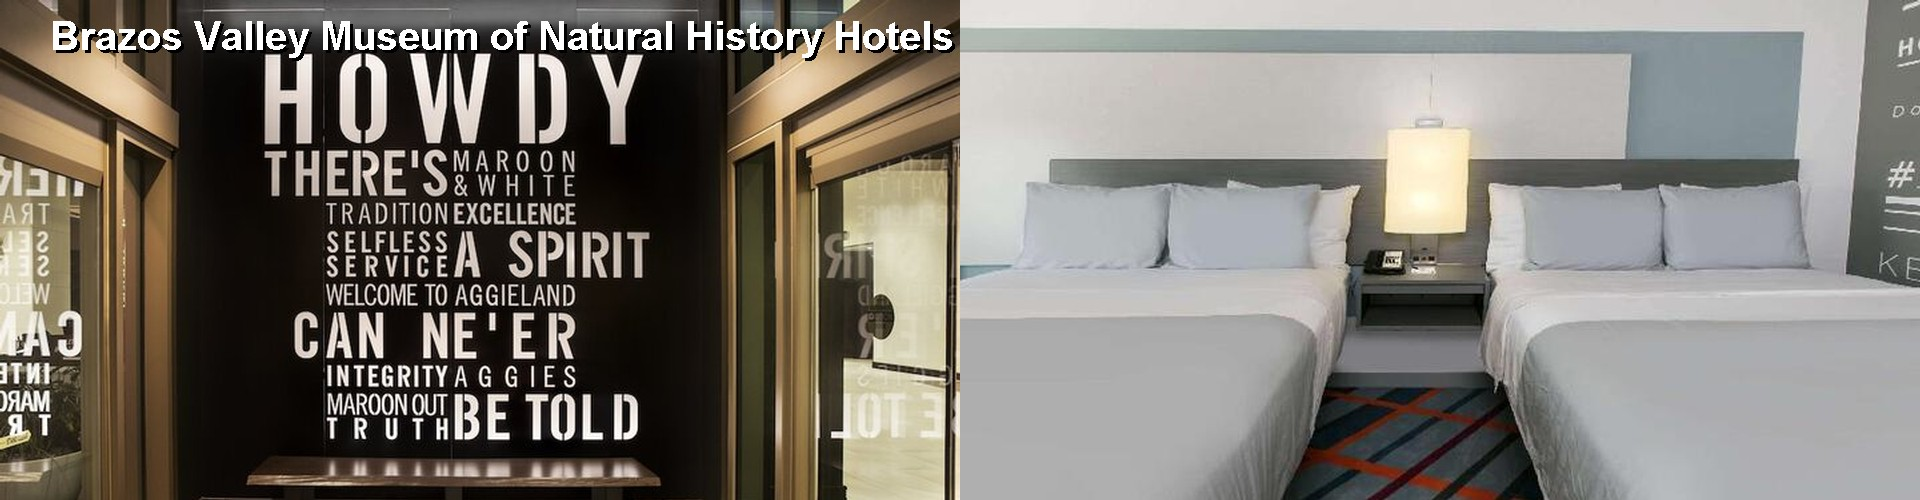 5 Best Hotels near Brazos Valley Museum of Natural History